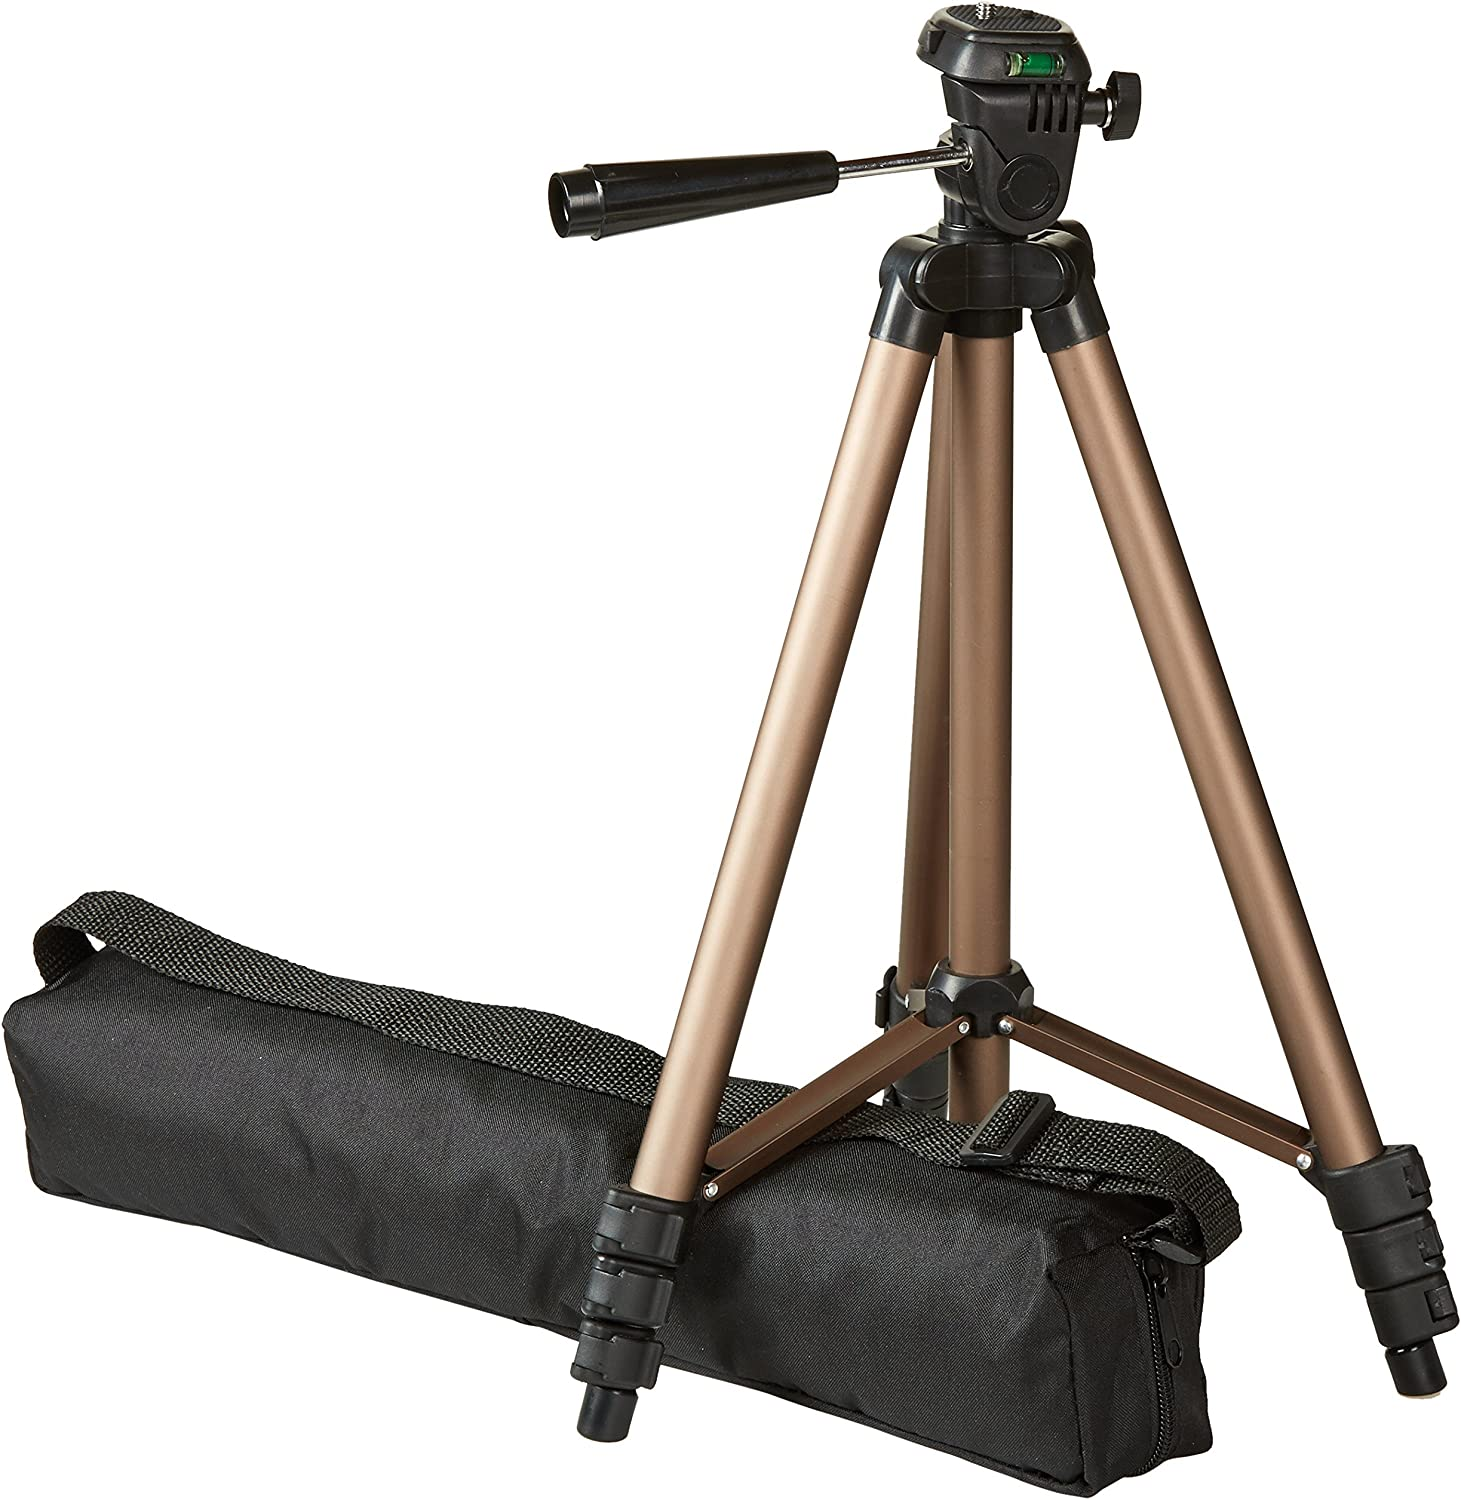 AmazonBasics Lightweight Camera Mount Tripod Stand With Bag - 16 5 - 50 Inches